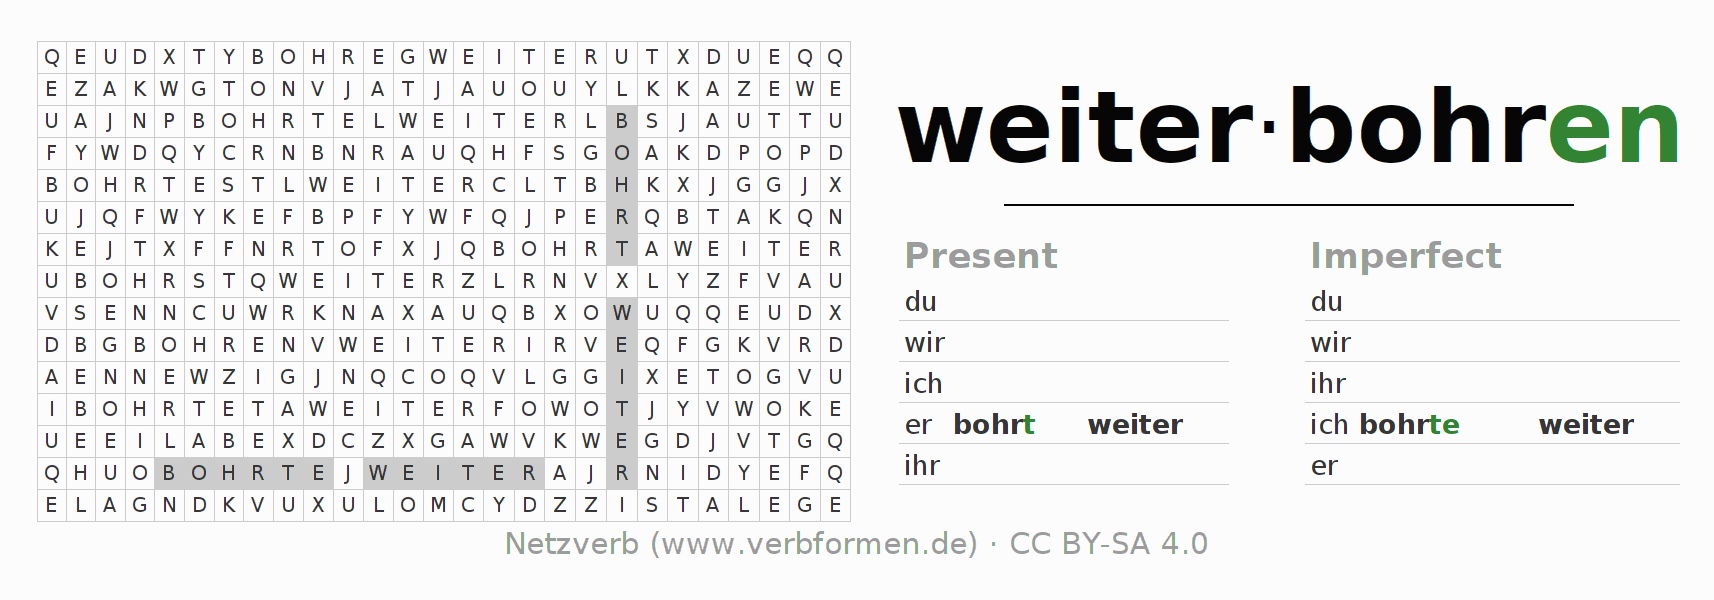 Word search puzzle for the conjugation of the verb weiterbohren